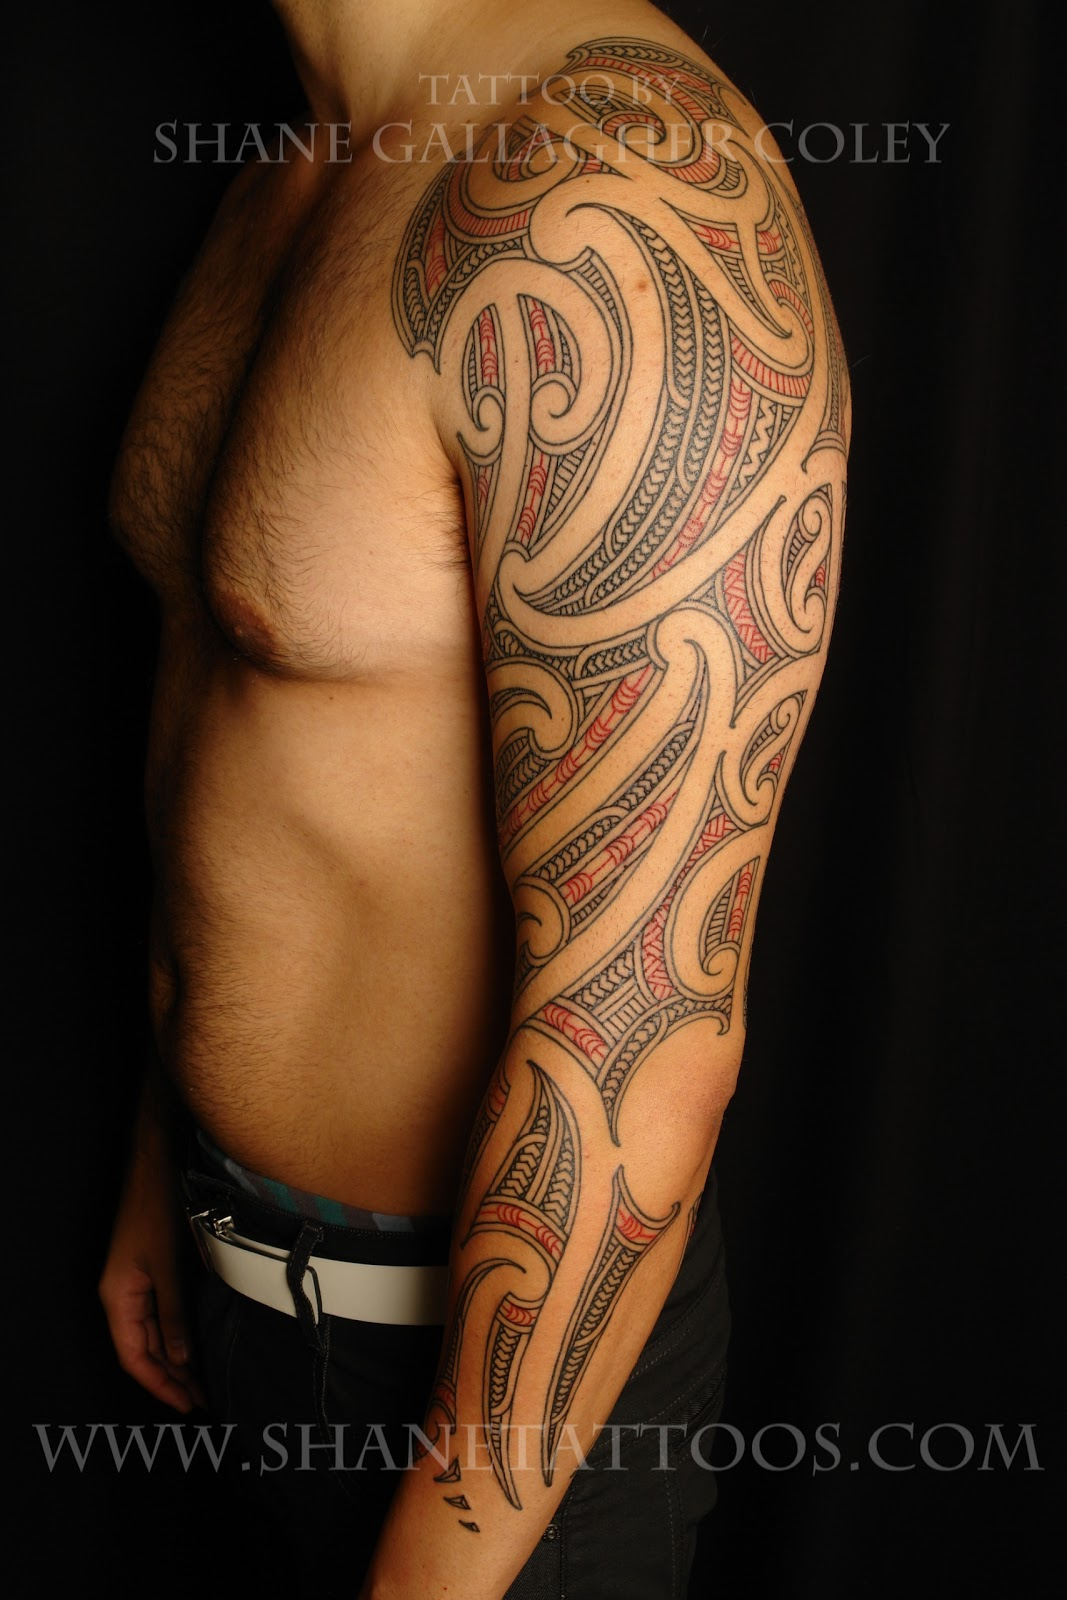 MAORI POLYNESIAN TATTOO: Maori Sleeve Tattoo On Matt